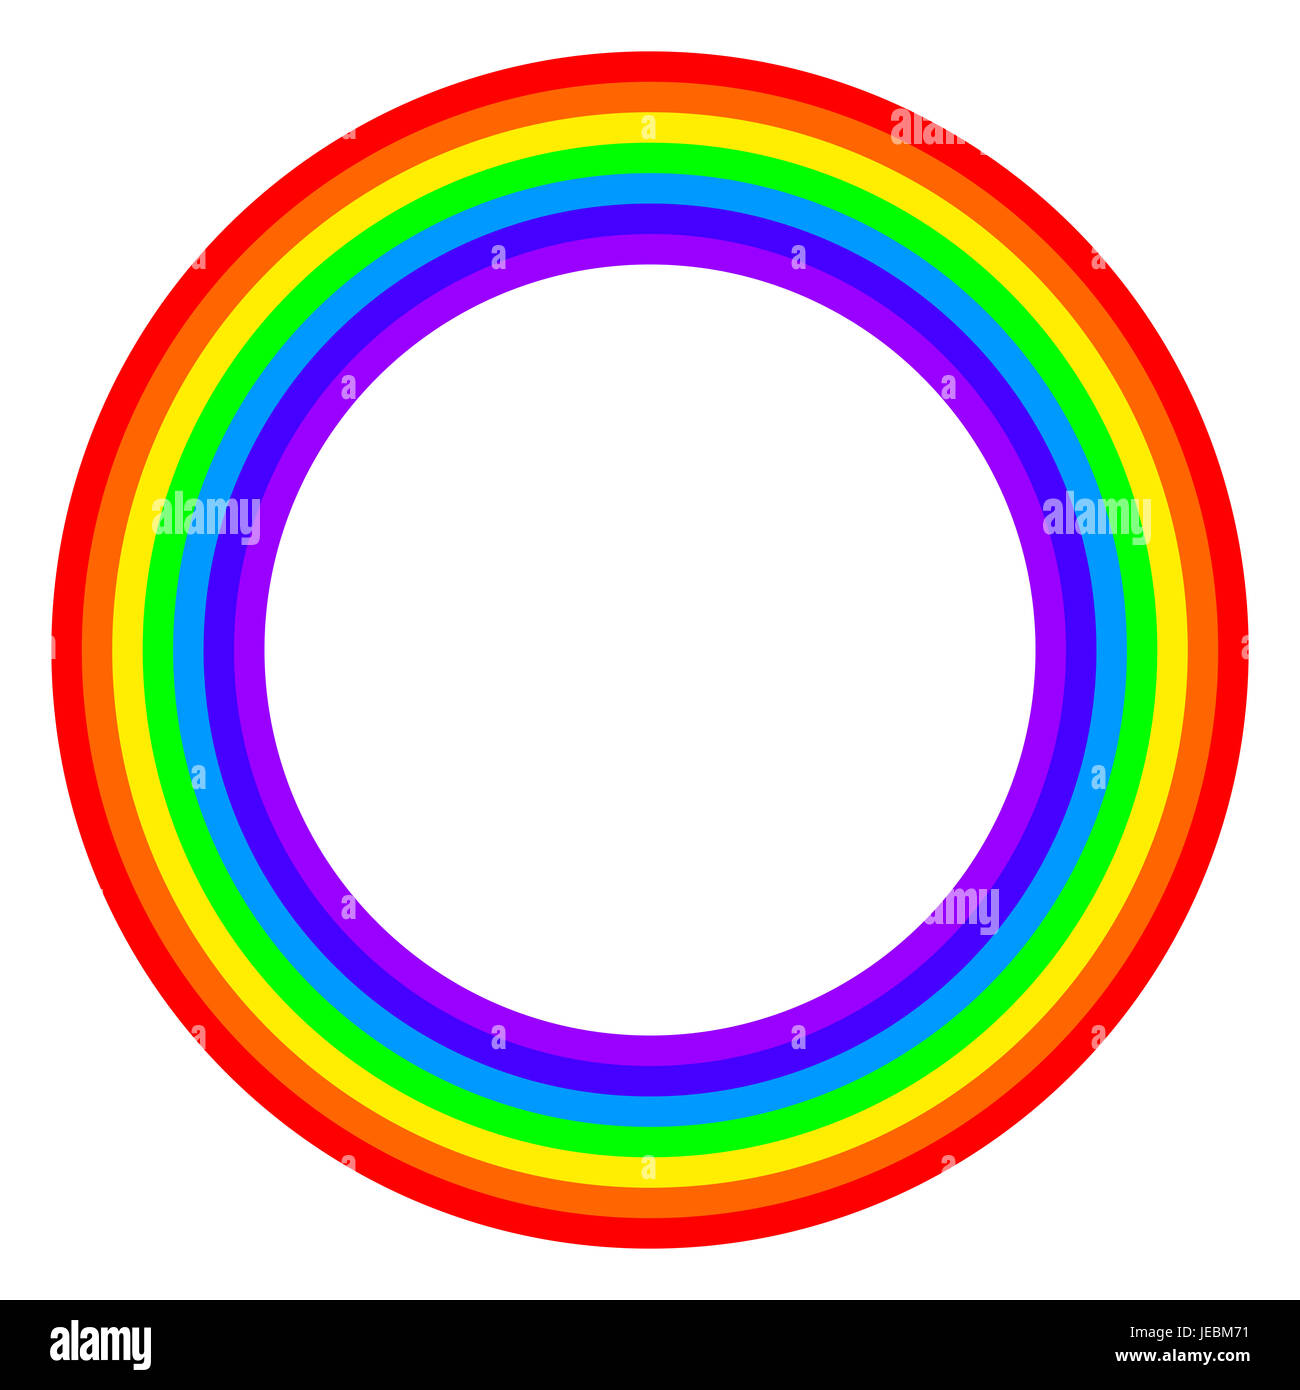 Rainbow circle spectrum colored. Ring with rainbow bands in seven colors of the spectrum and visible light. Stock Photo